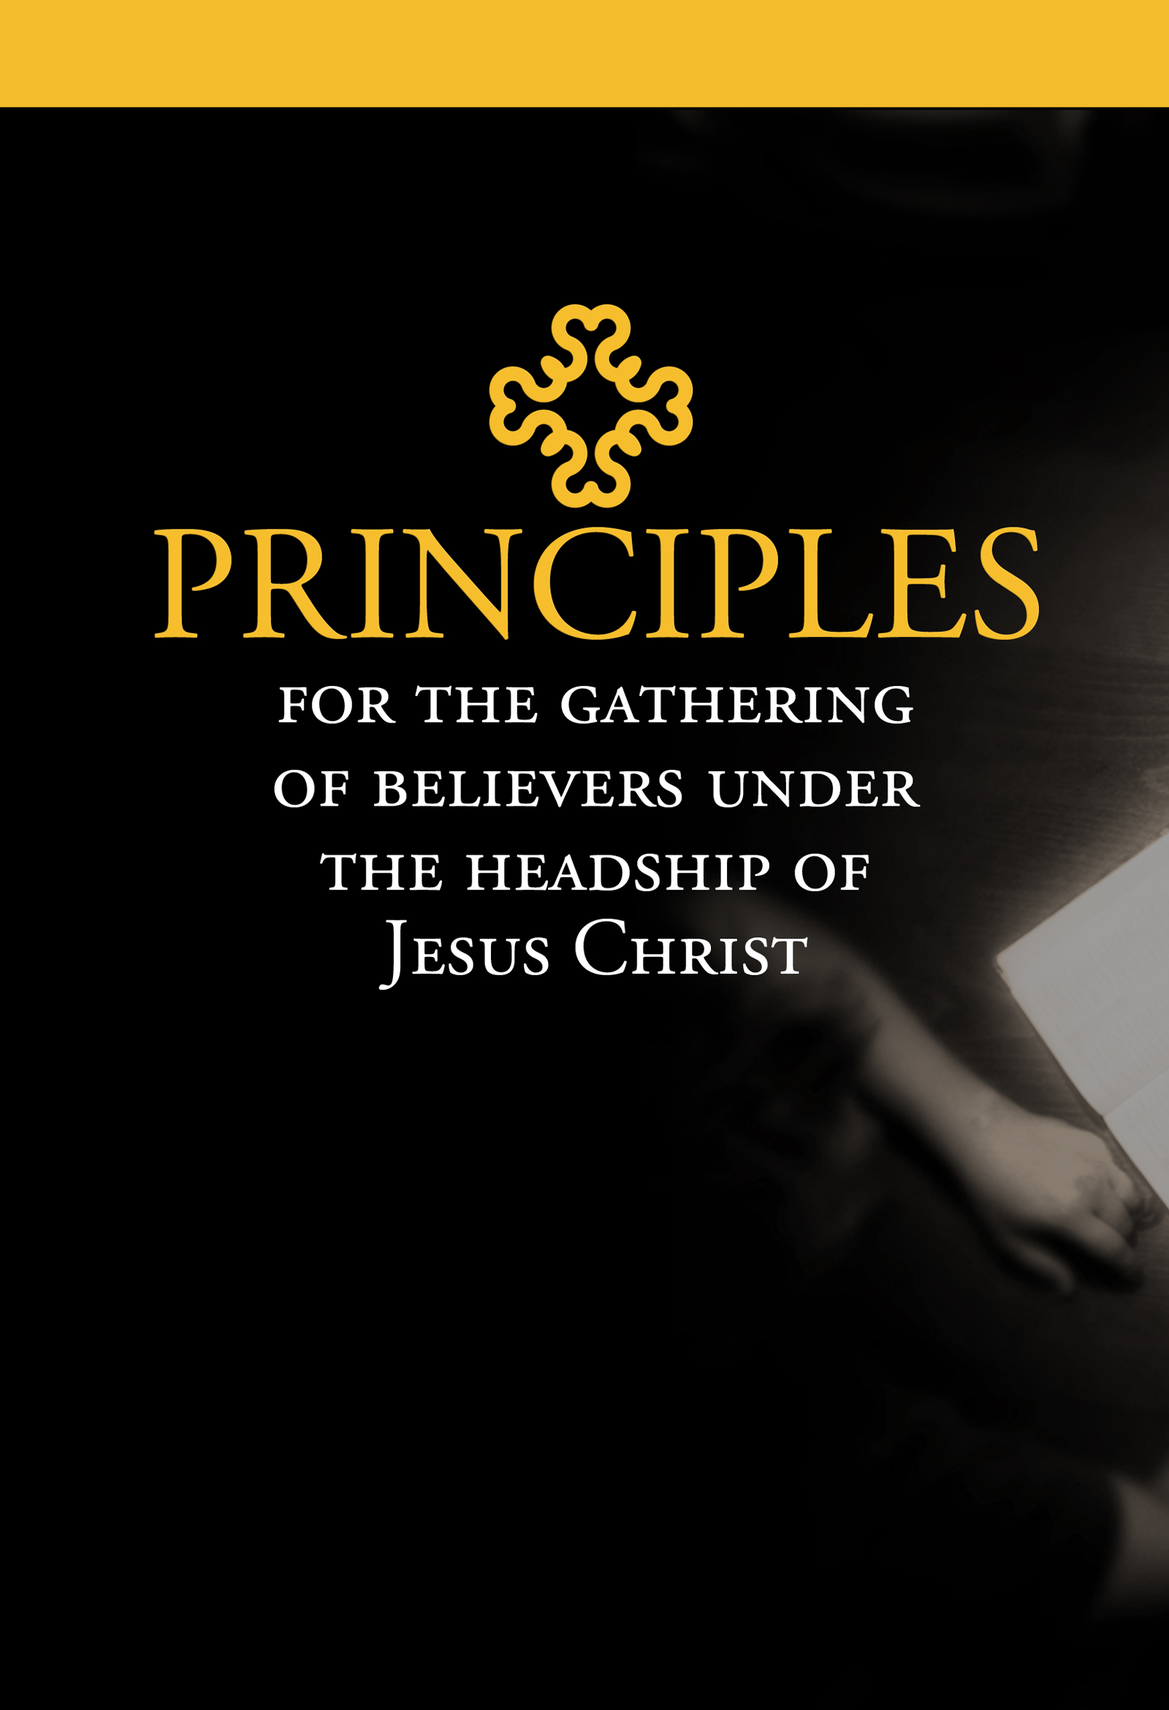 Principles for the Gathering of Believers Under the Headship of Jesus Christ